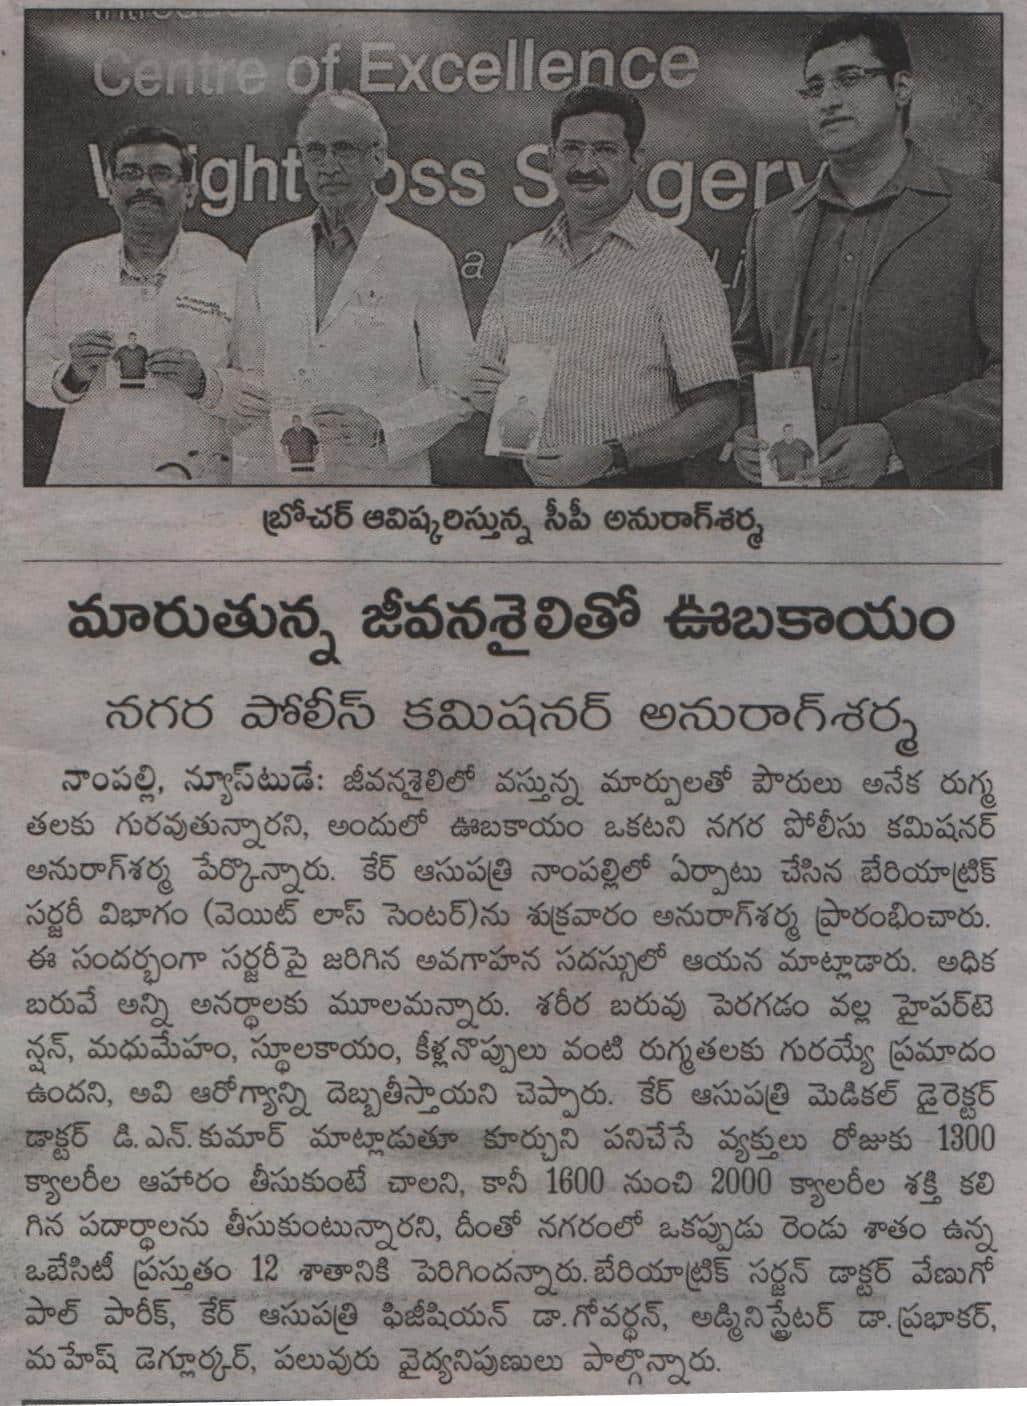 Dr V Pareek, Best bariatric Surgeon India is in news along with Hyderabad City Police Commissioner